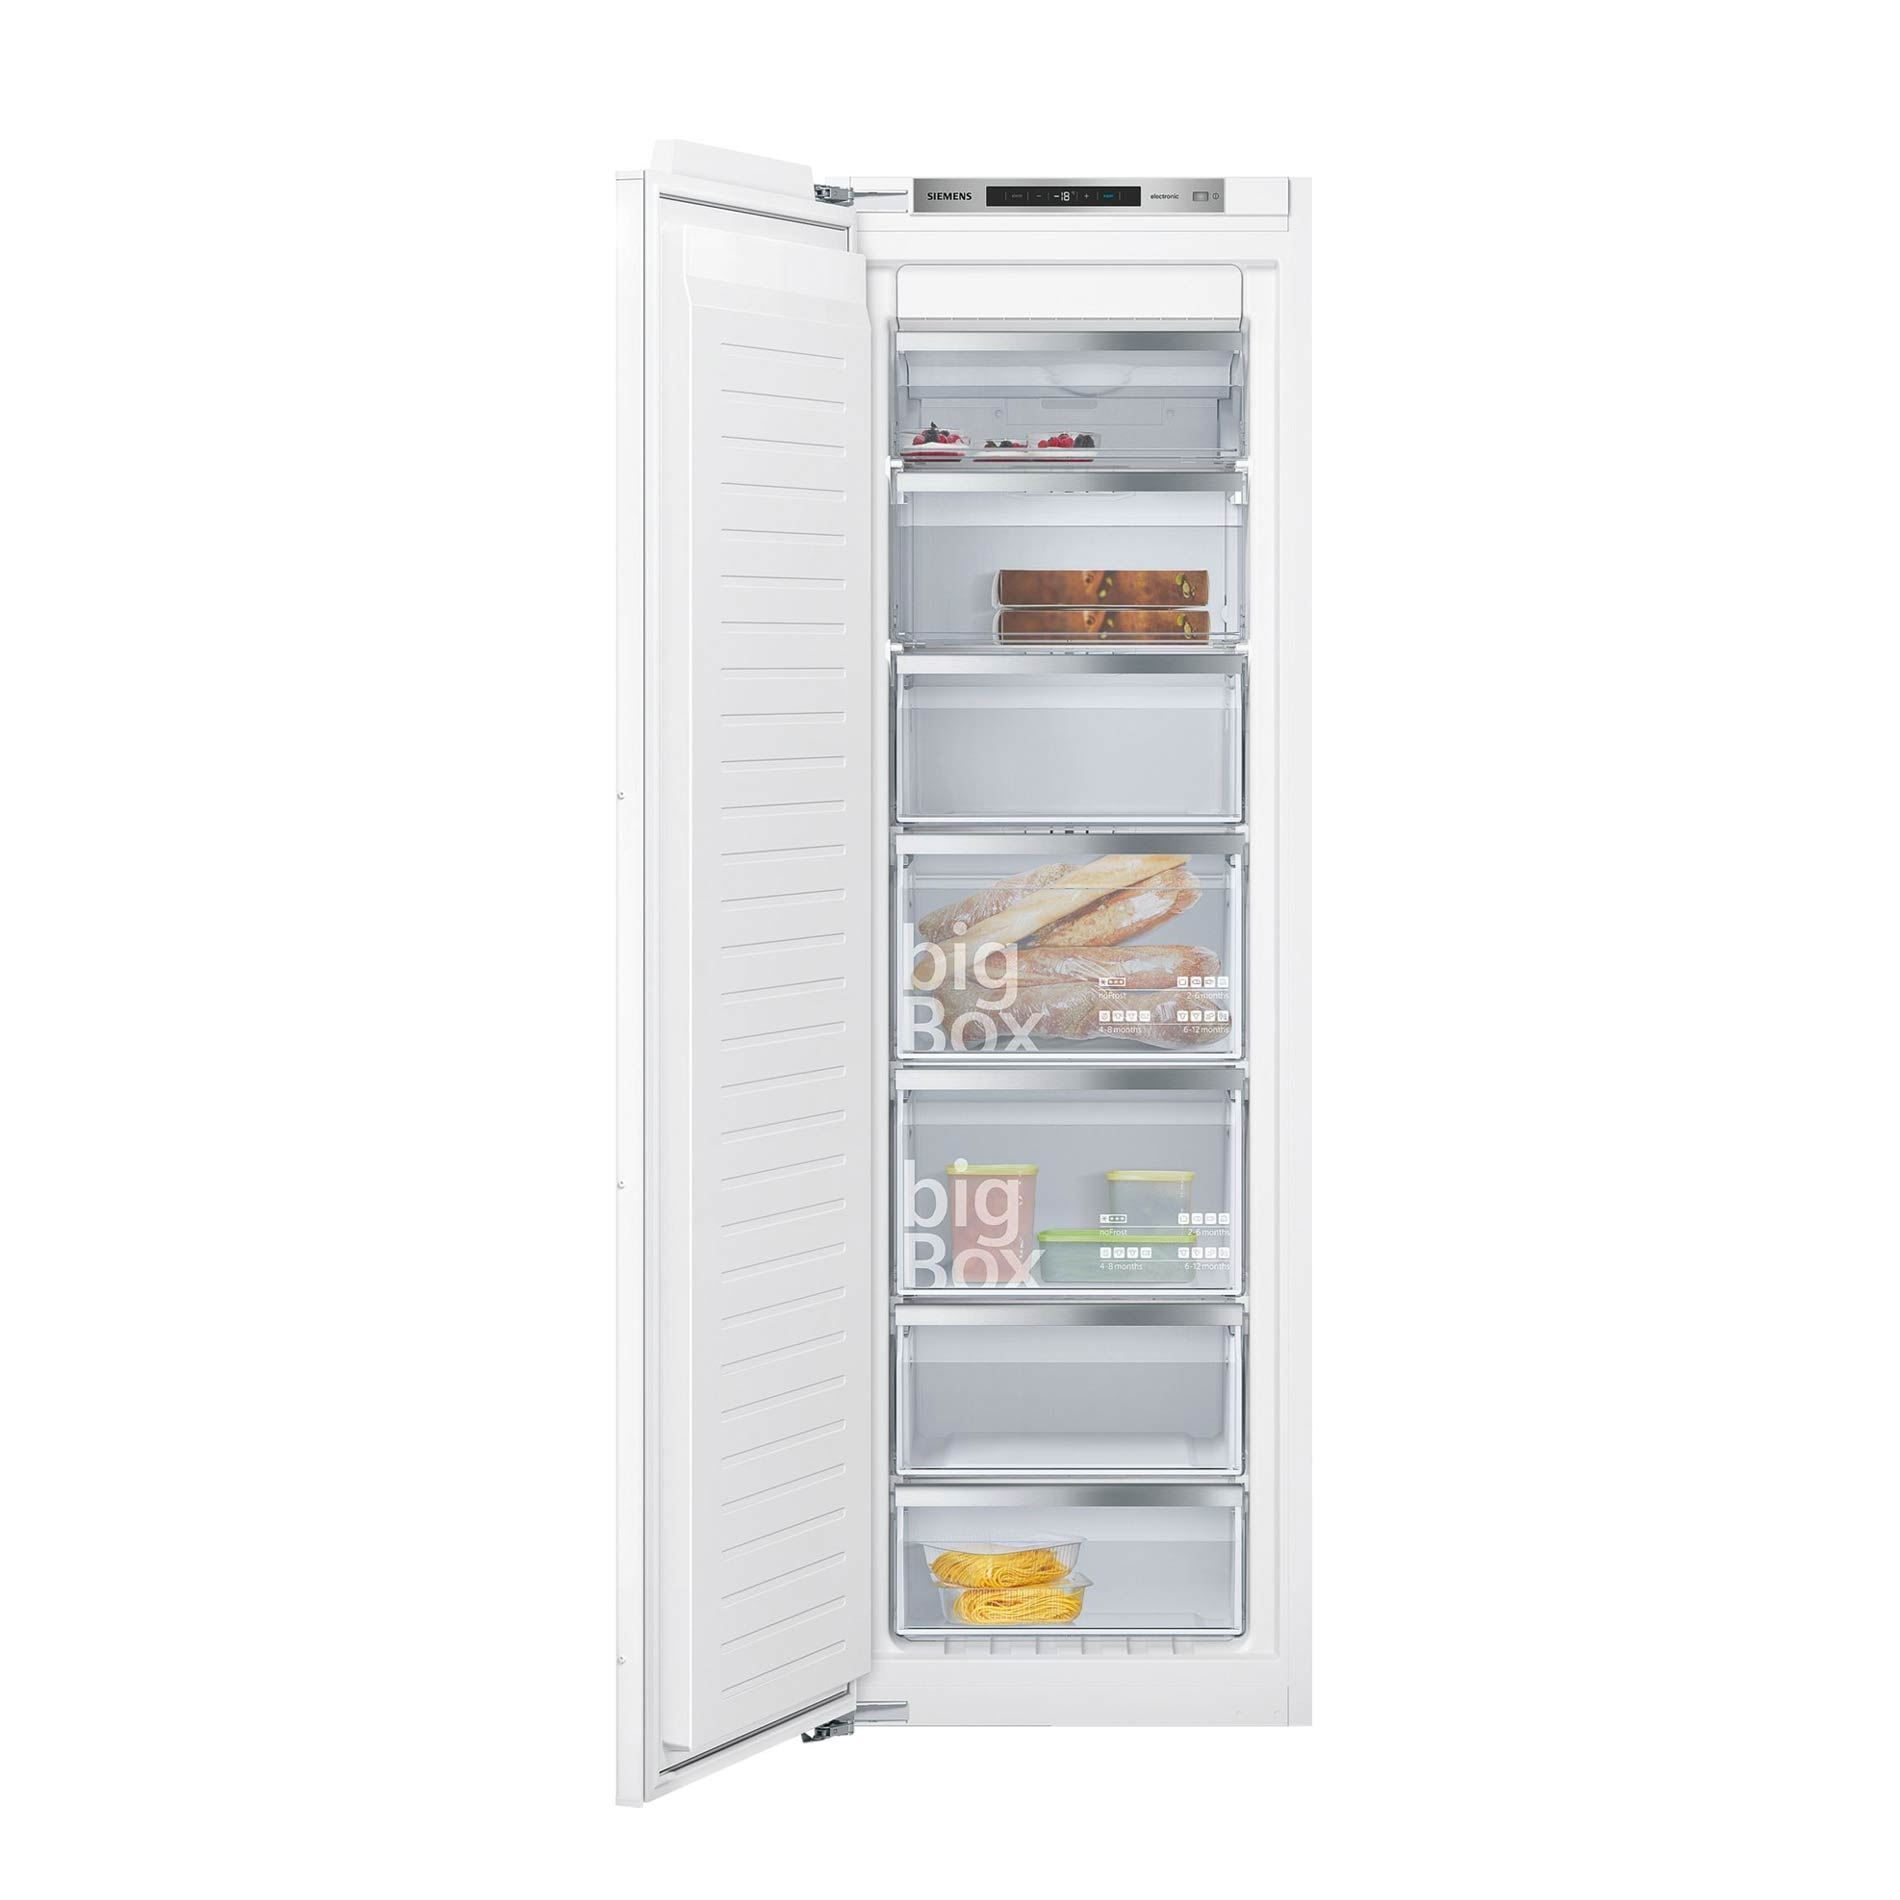 Picture of GI81NAE30G Built In Freezer